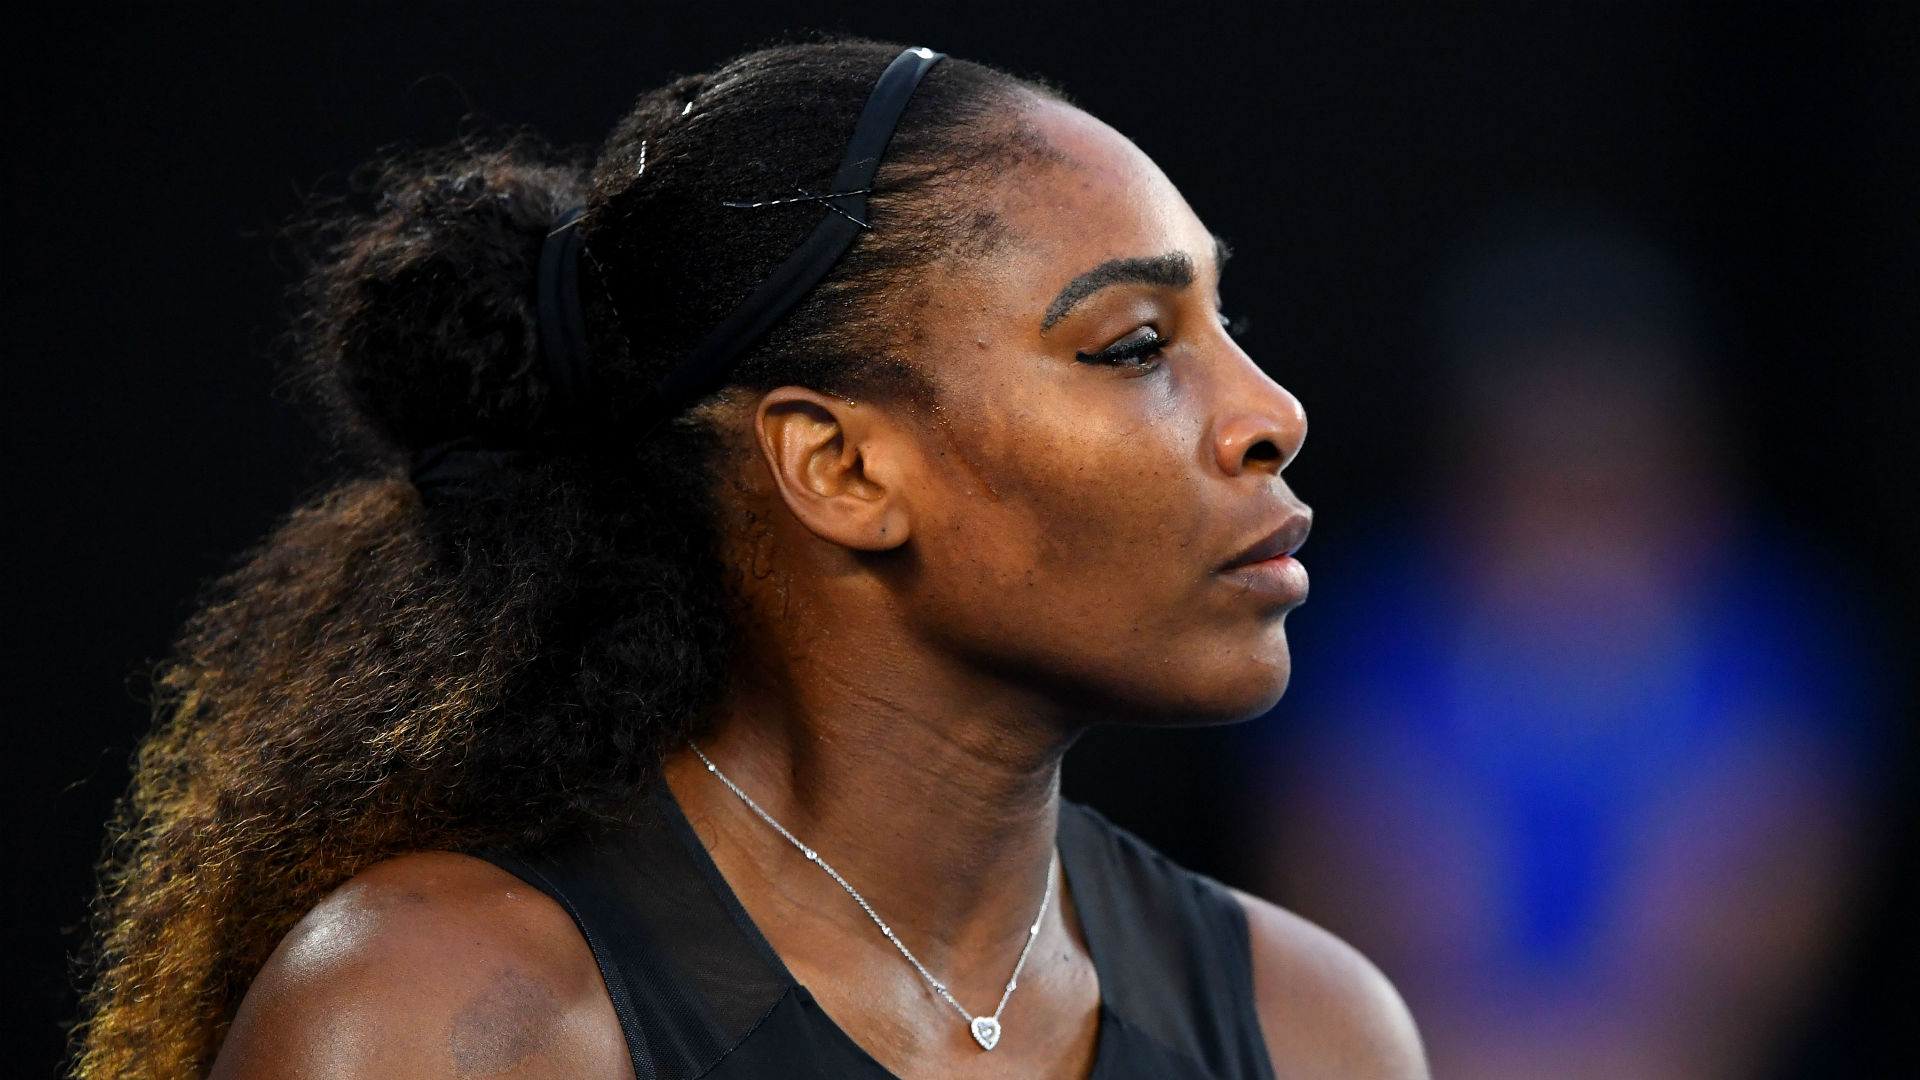 Should John McEnroe apologize to Serena Williams?